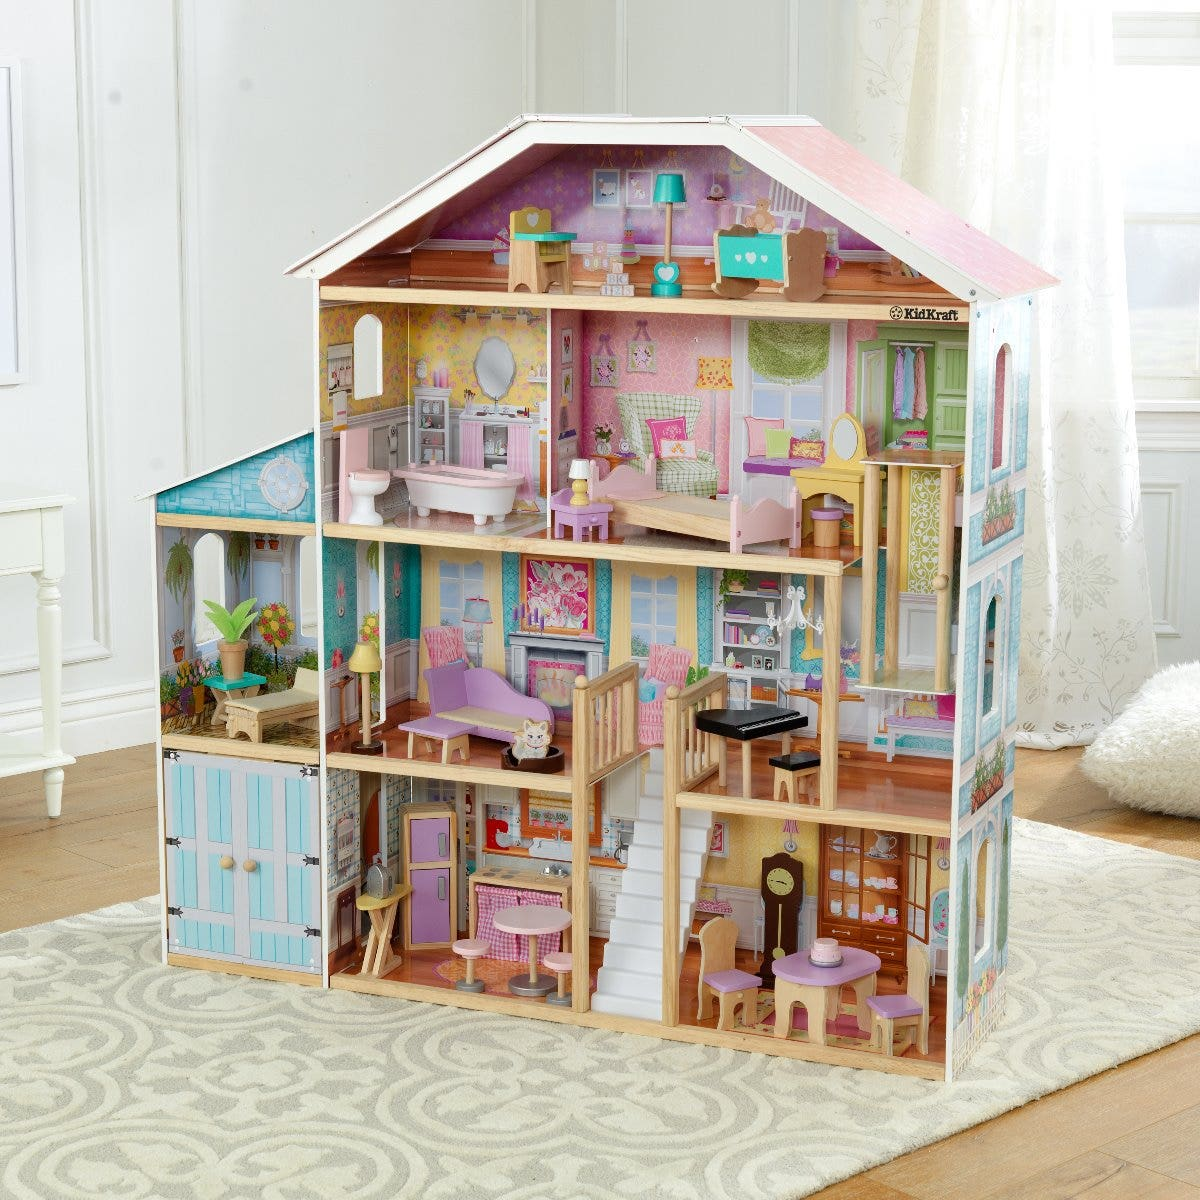 Eight rooms of open space to decorate and let imaginations run wild